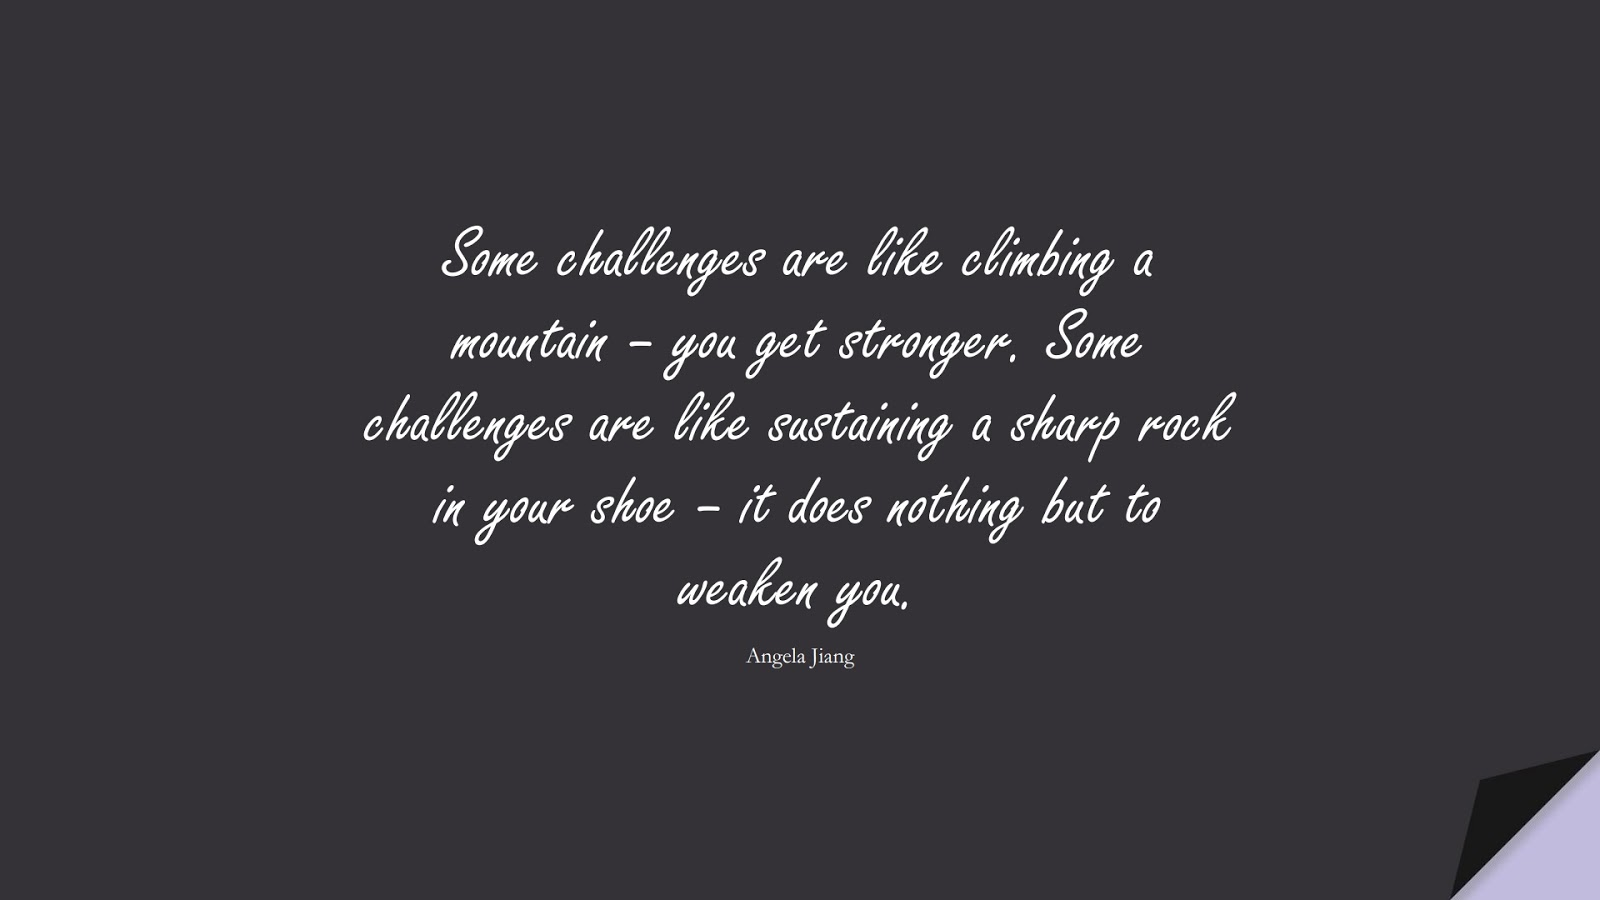 Some challenges are like climbing a mountain – you get stronger. Some challenges are like sustaining a sharp rock in your shoe – it does nothing but to weaken you. (Angela Jiang);  #BeingStrongQuotes